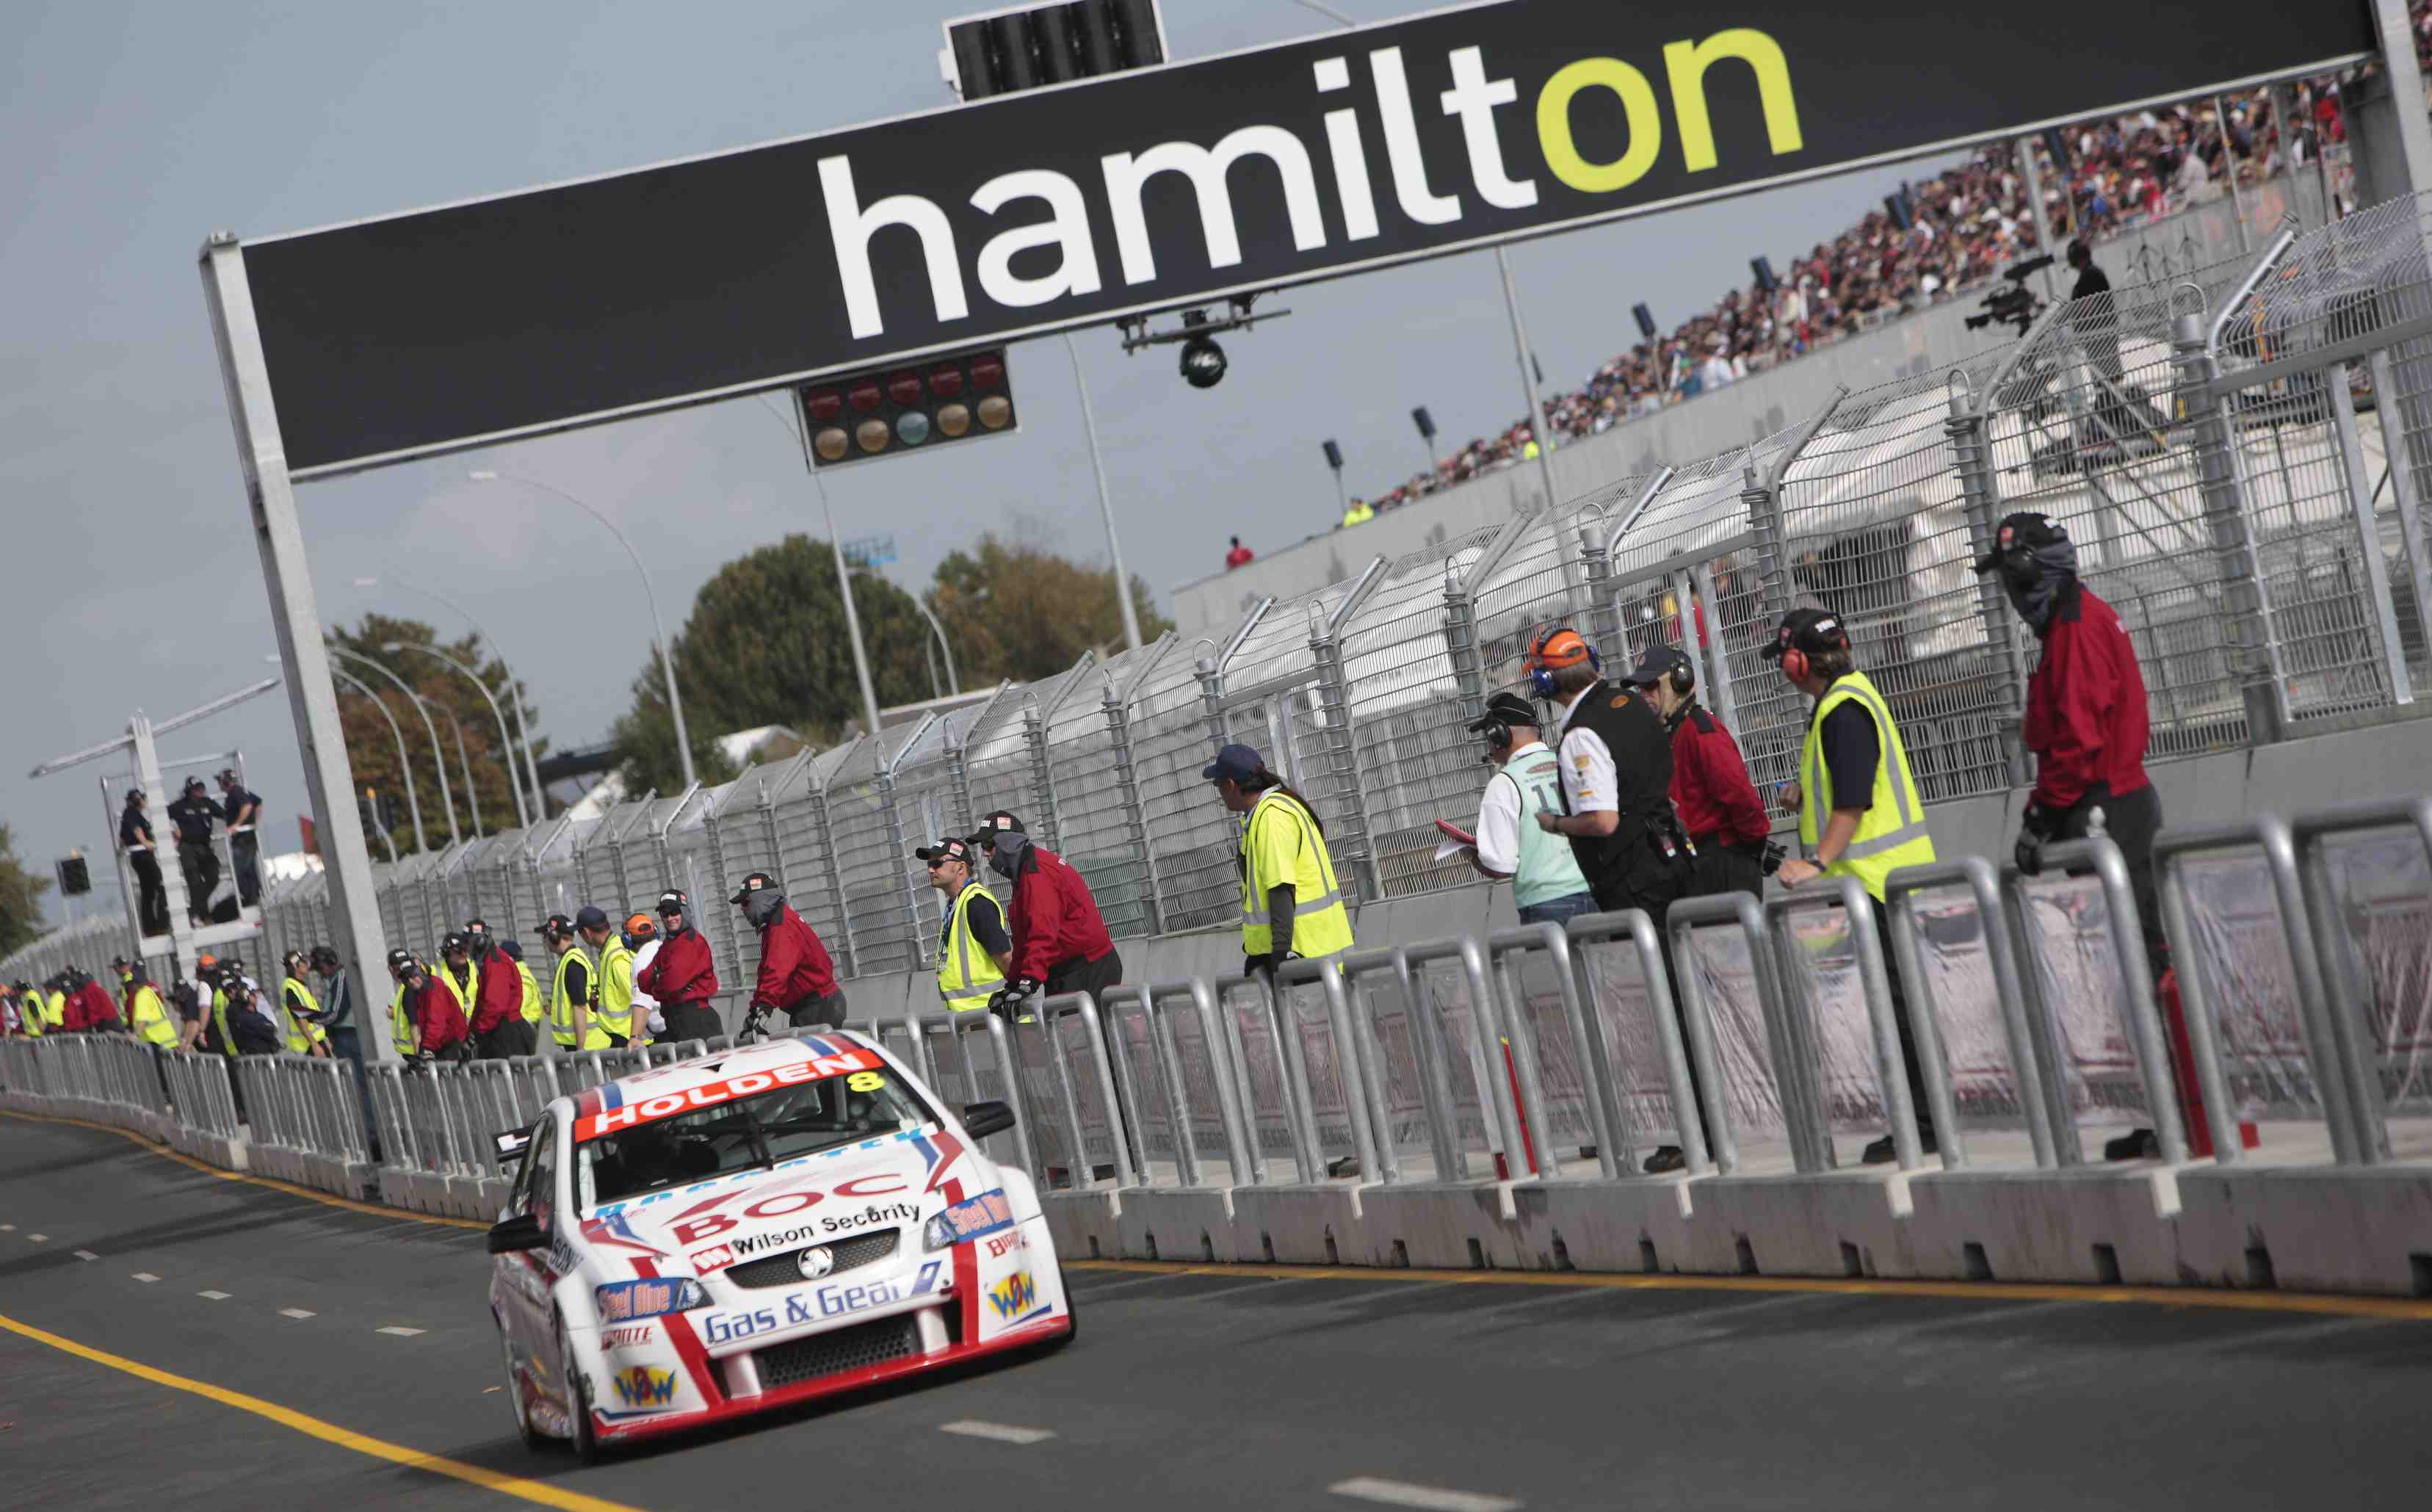 Slow Hamilton pre-race sales causes stir